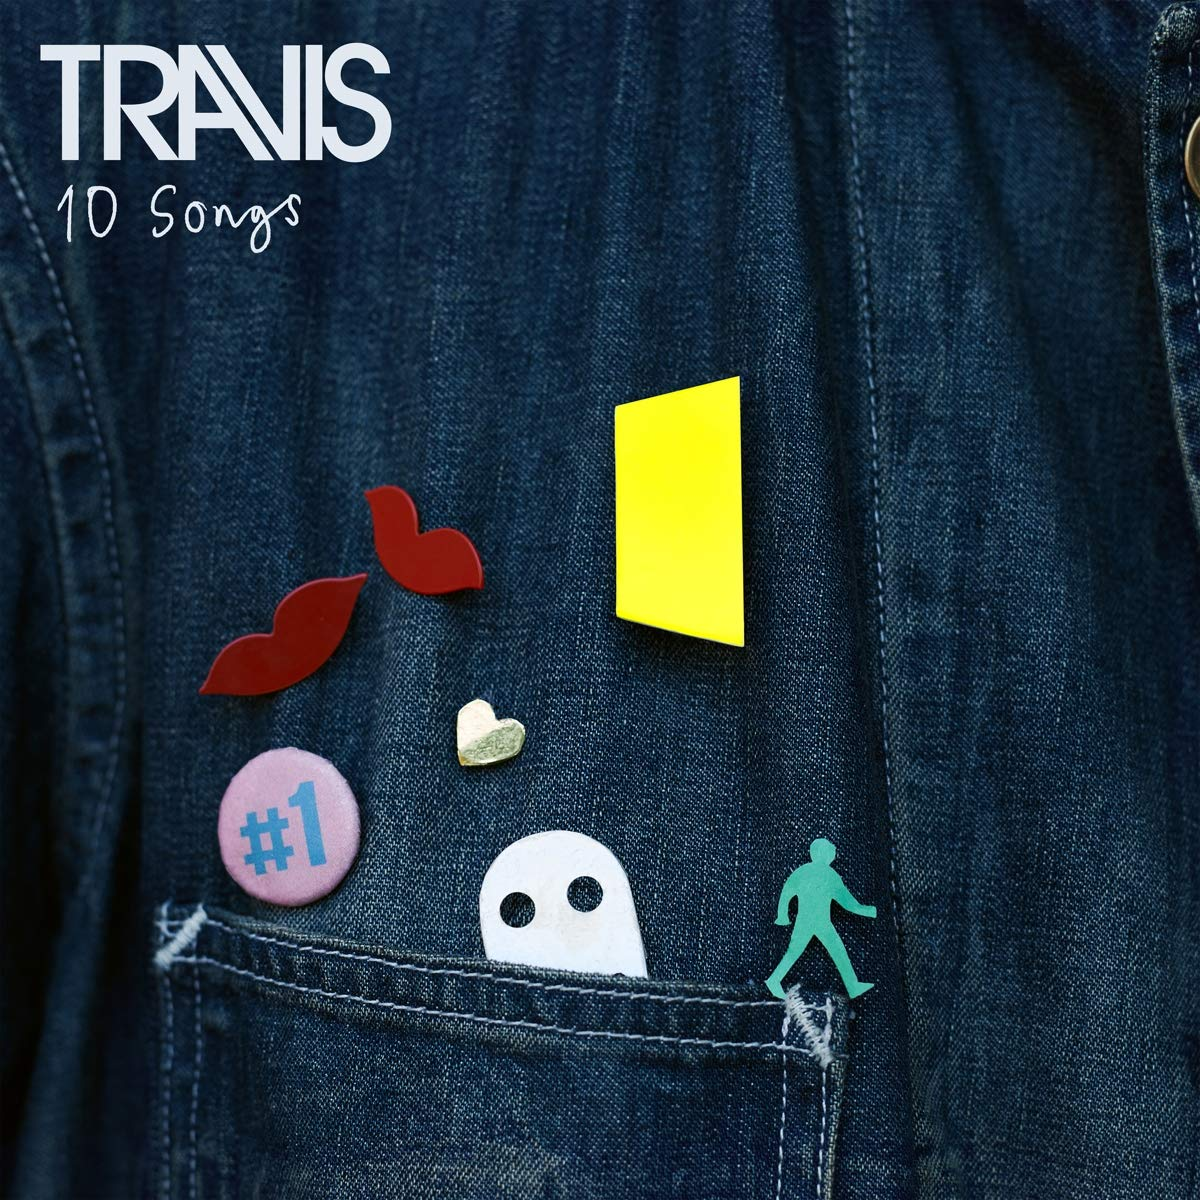 Travis - 10 Songs [Deluxe 2CD]